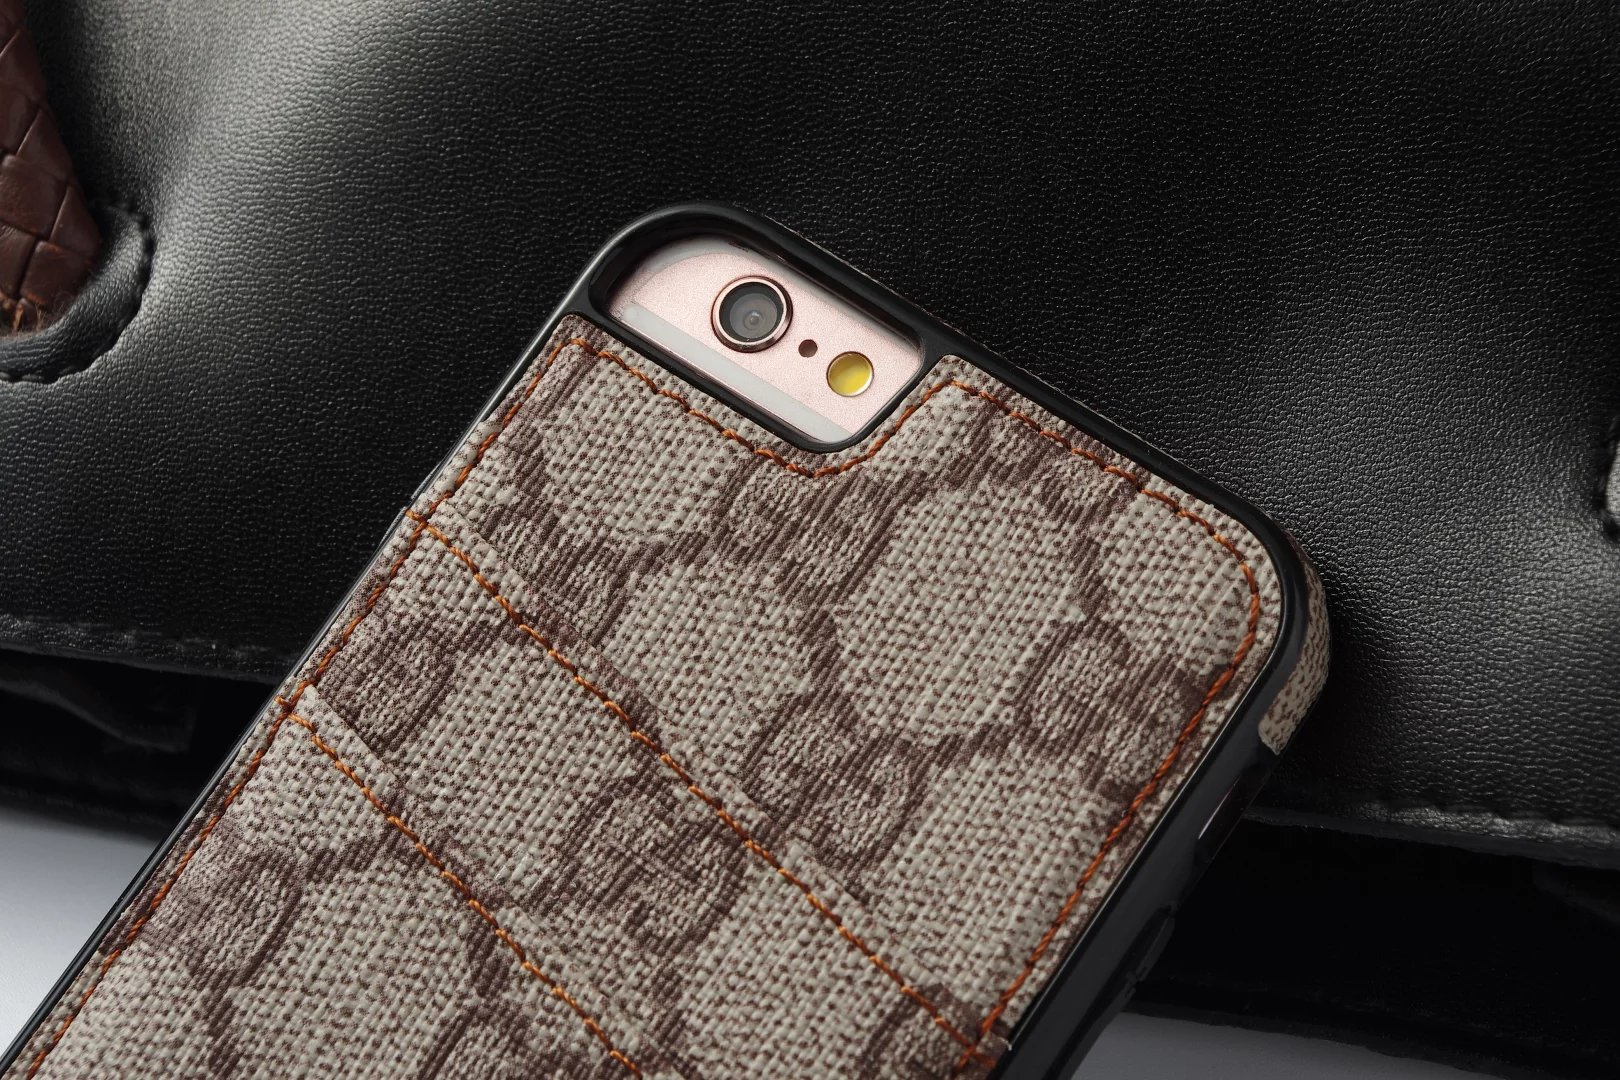 iphone hülle bedrucken lassen günstig iphone hülle selbst gestalten Louis Vuitton iphone 8 Plus hüllen iphone handyhülle mit foto neues iphone wann kommt es raus handy hülle bedrucken iphone 8 Plus silikon hülle edle iphone 8 Plus hüllen eifon 8 Plus